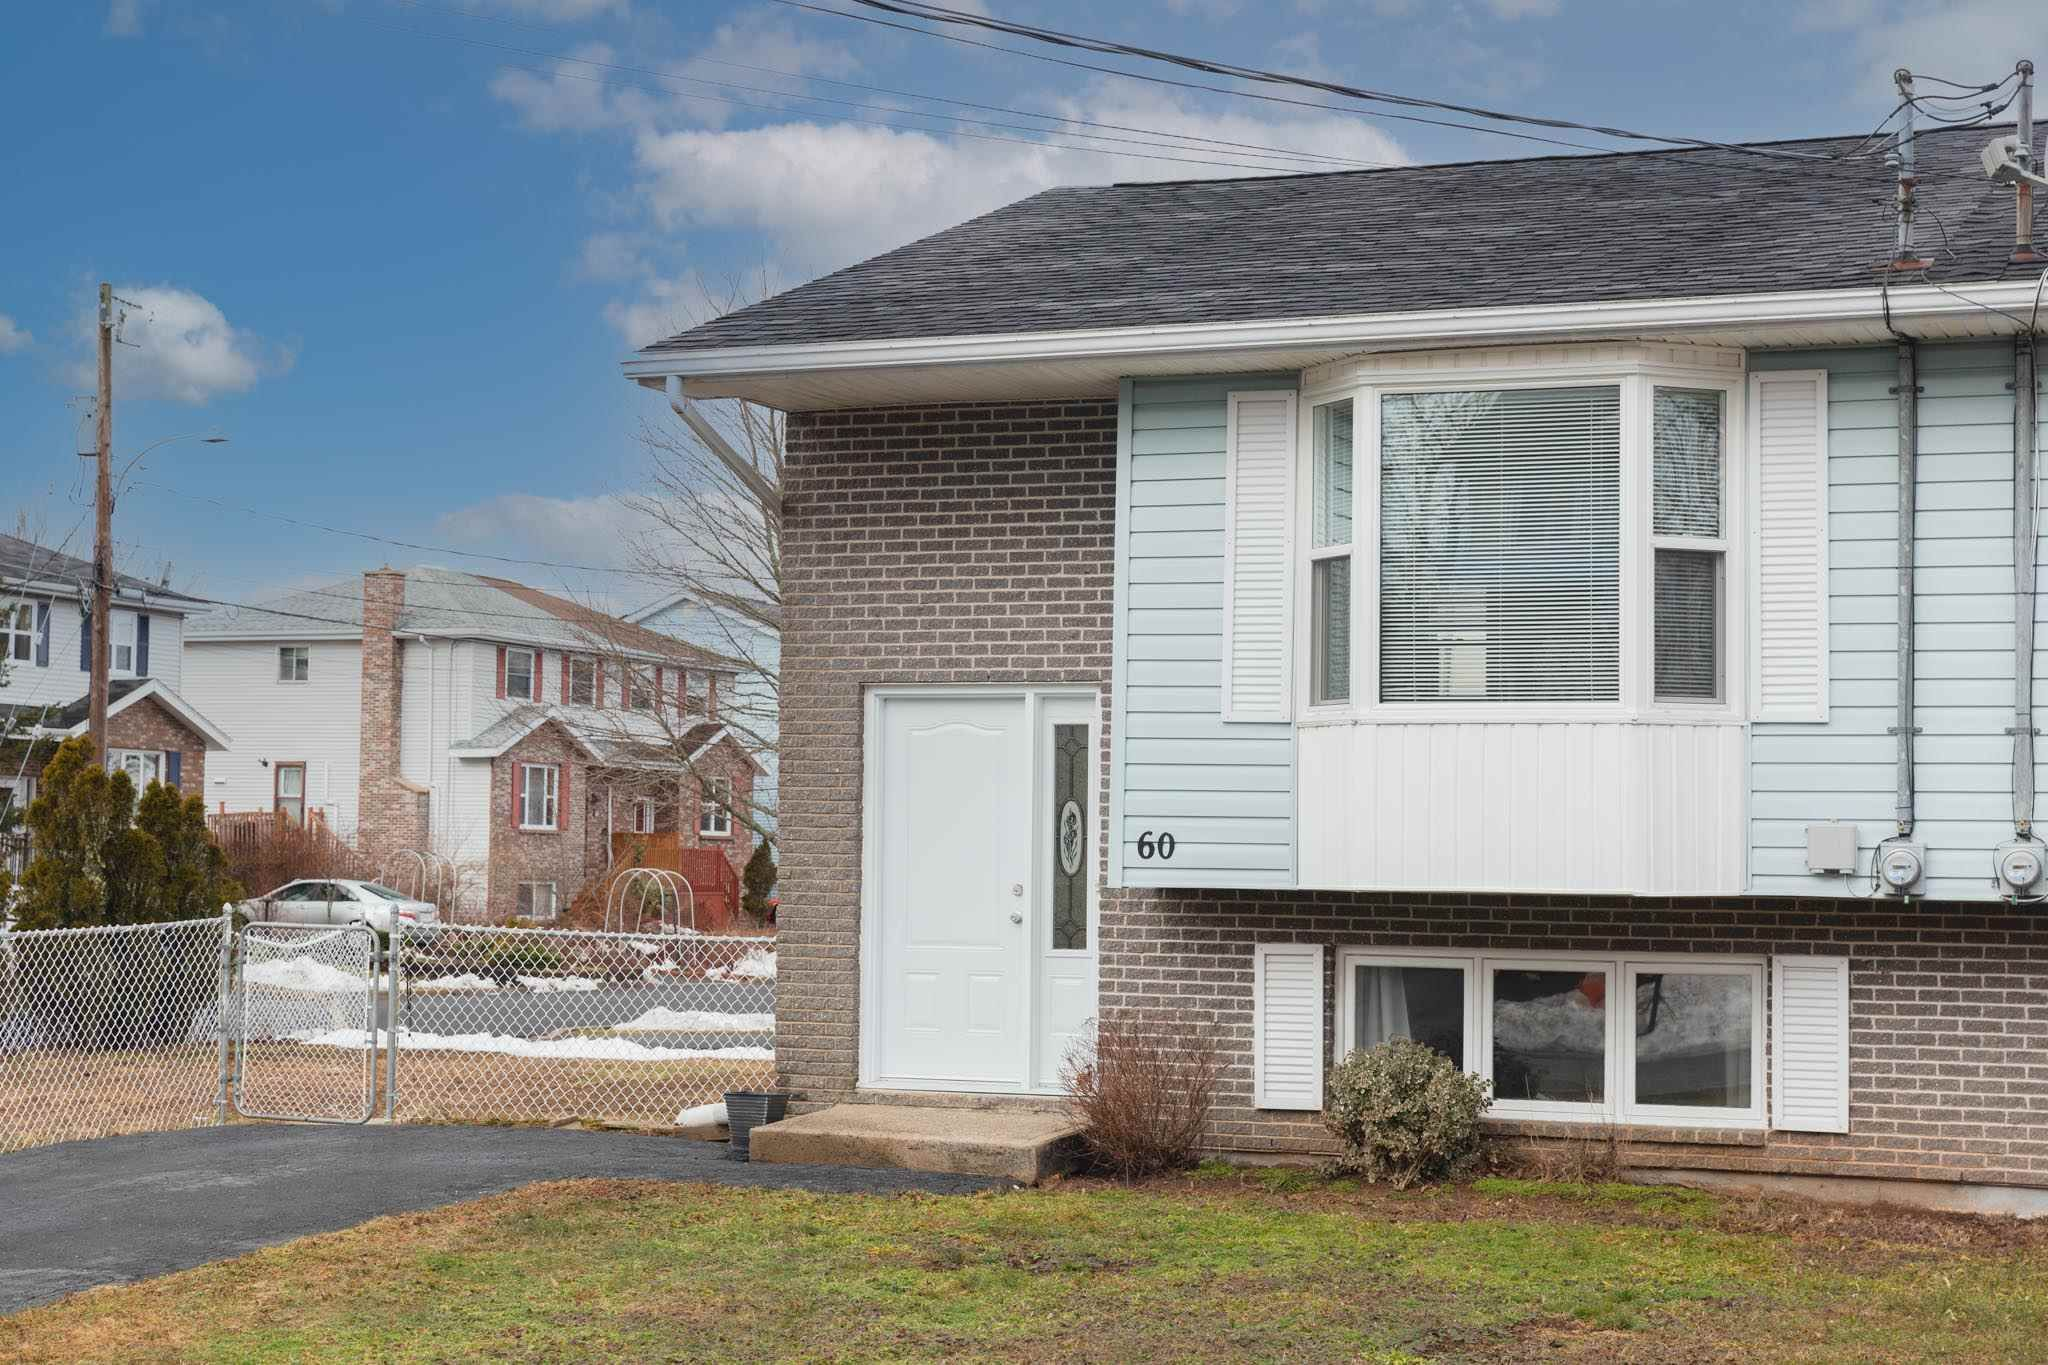 Main Photo: 60 Silver Maple Drive in Timberlea: 40-Timberlea, Prospect, St. Margaret`S Bay Residential for sale (Halifax-Dartmouth)  : MLS®# 202102241